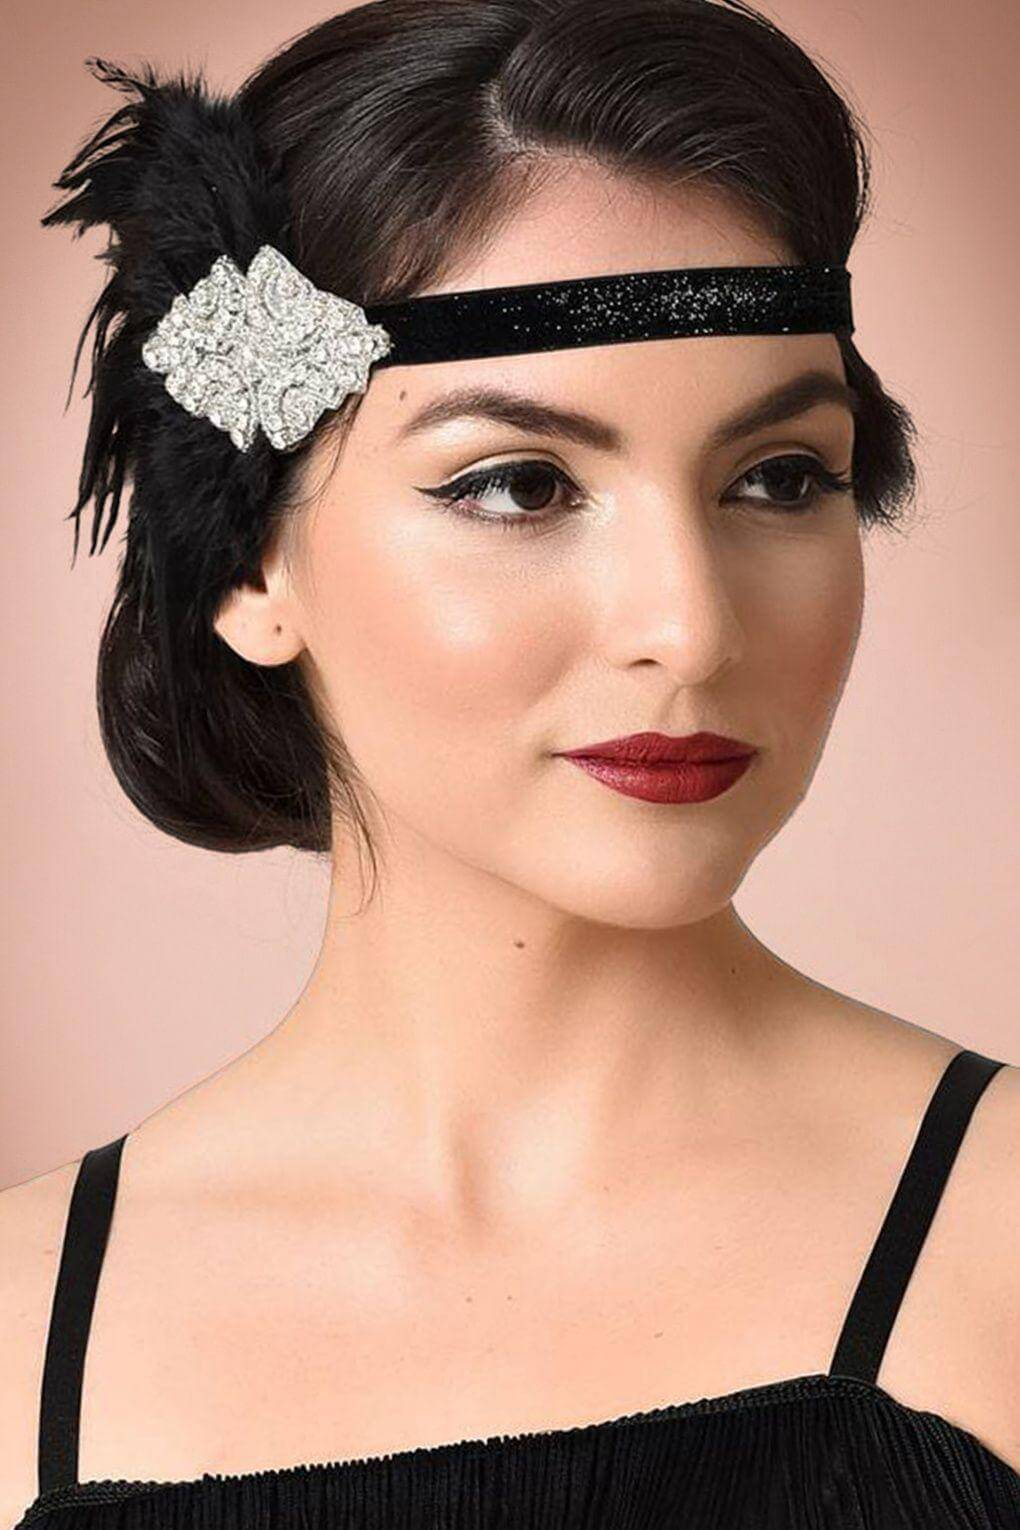 1920s Hairstyle With Headband - 14+   Hairstyles   Haircuts